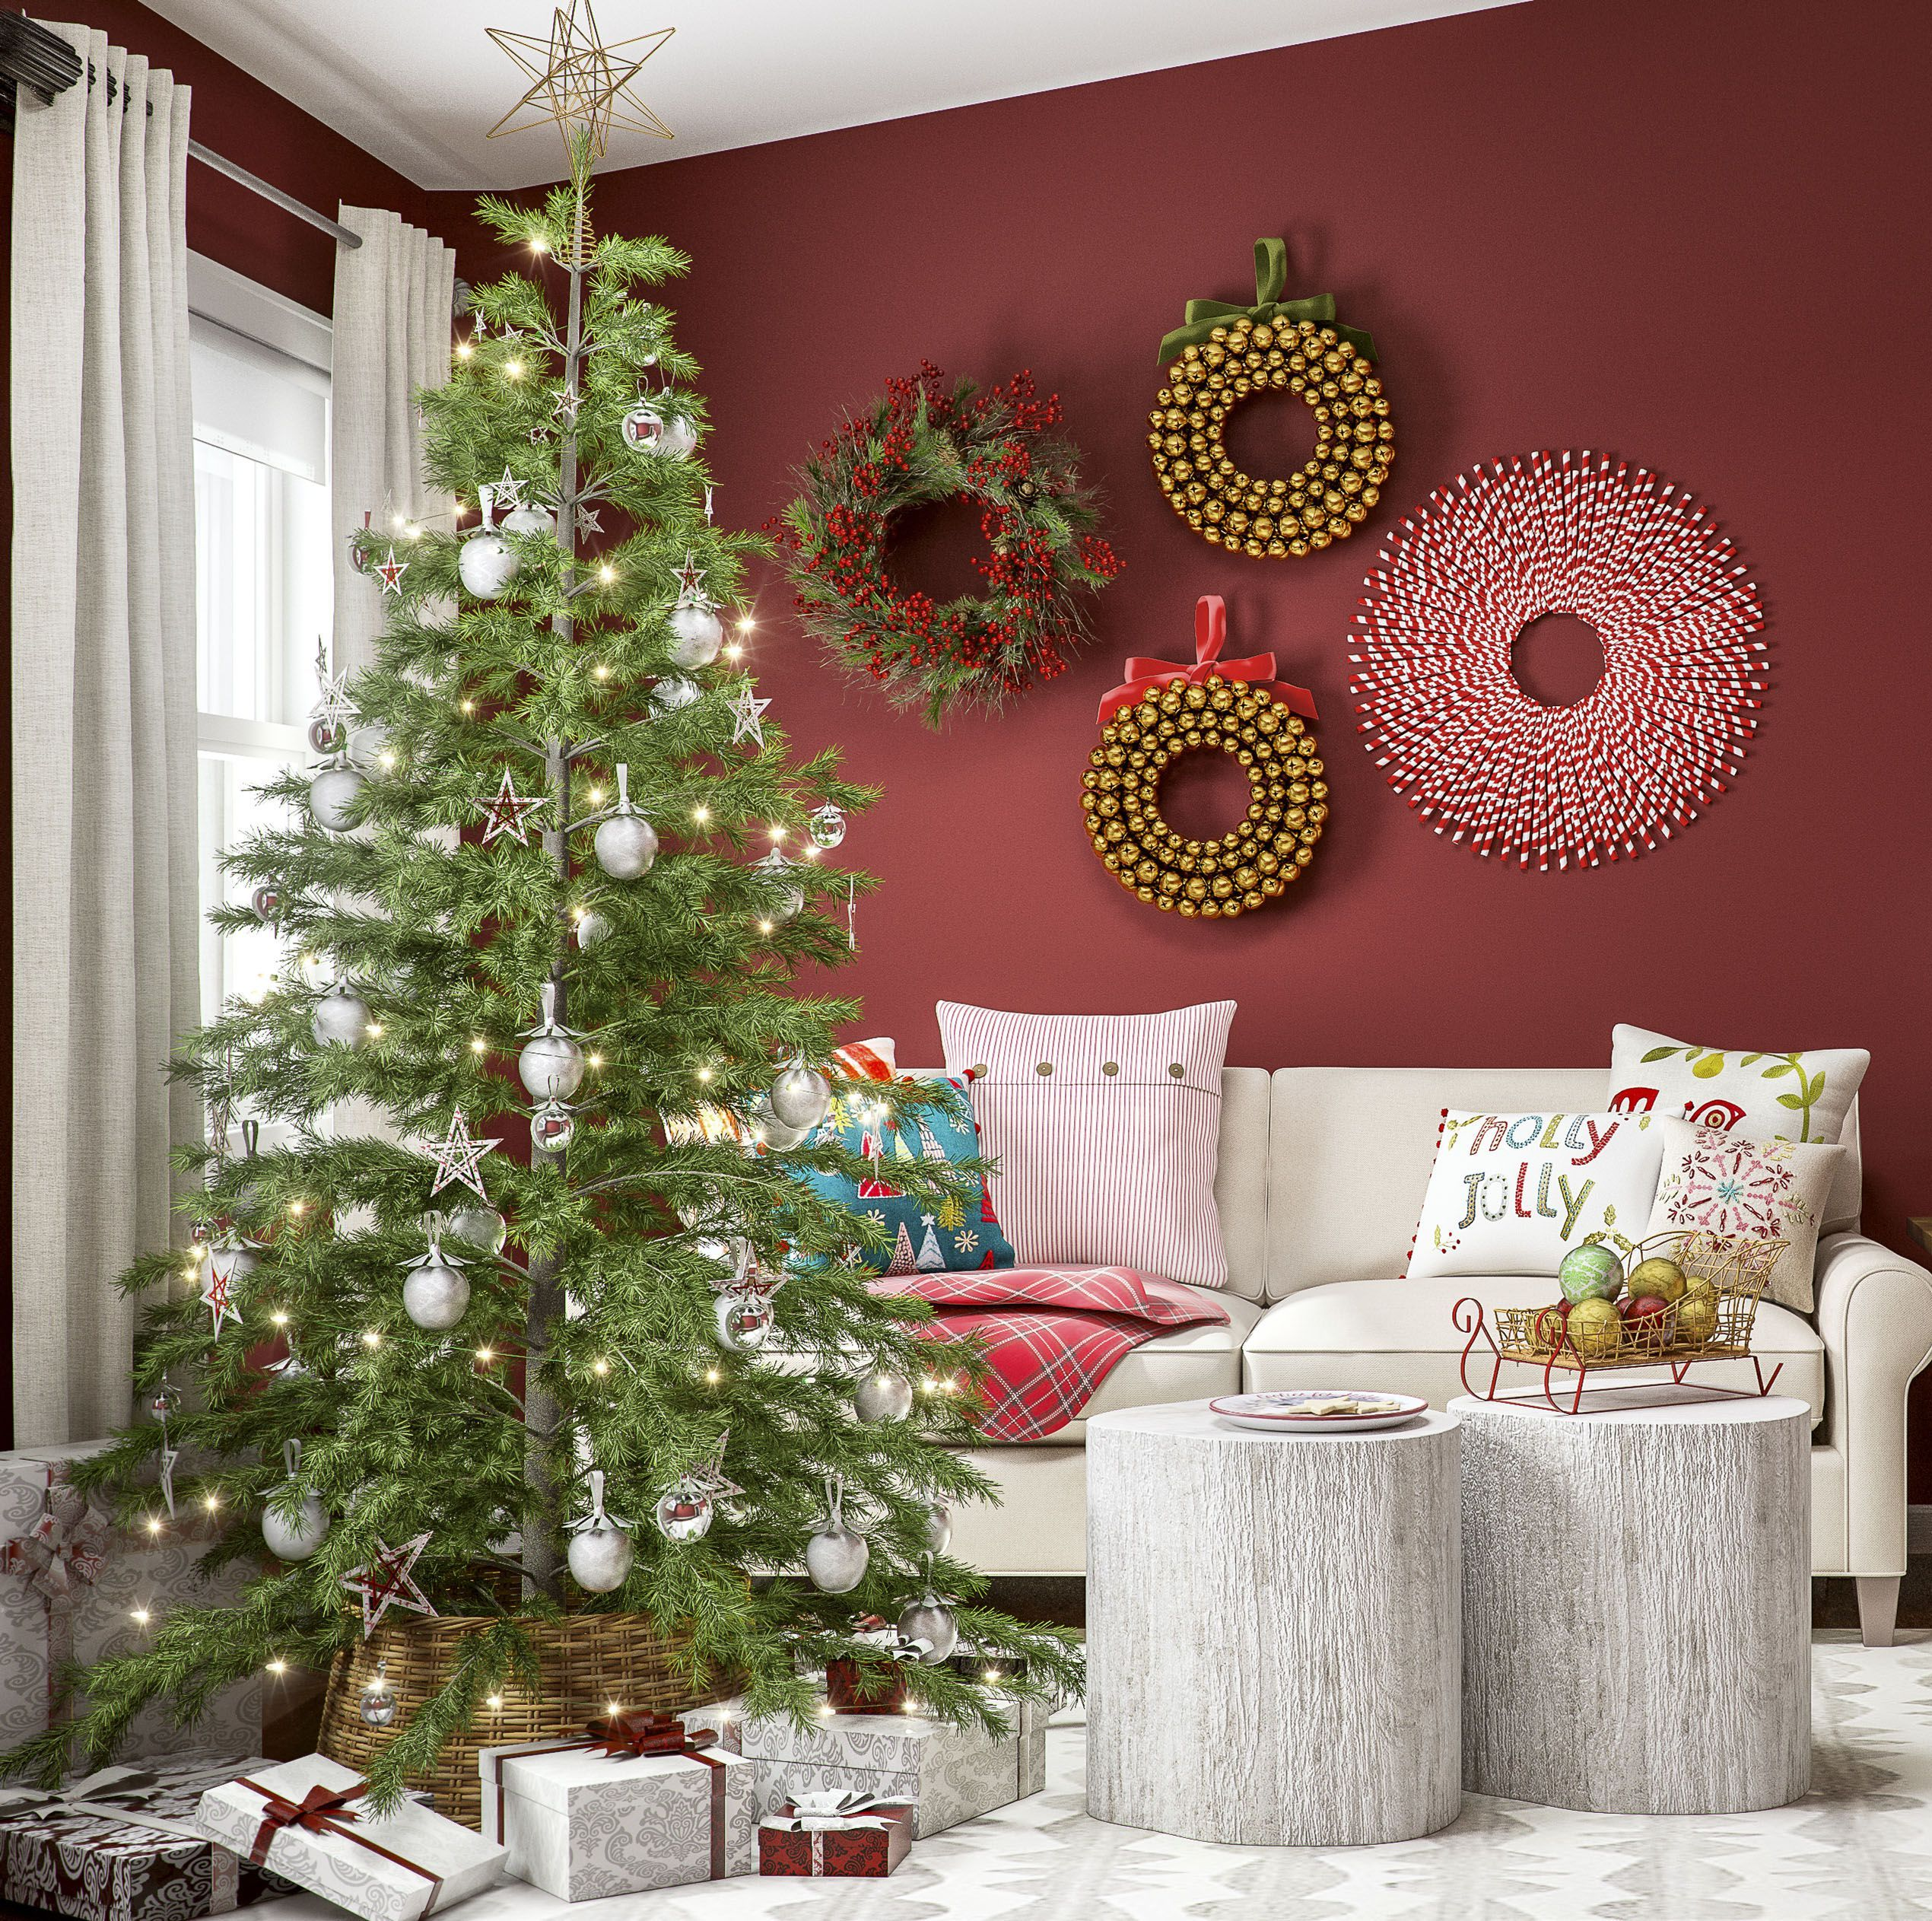 This Online Decorating Service Is Solving All Our December Design Woes Holiday Crafts Diy Christmas Crafts Easy Christmas Crafts